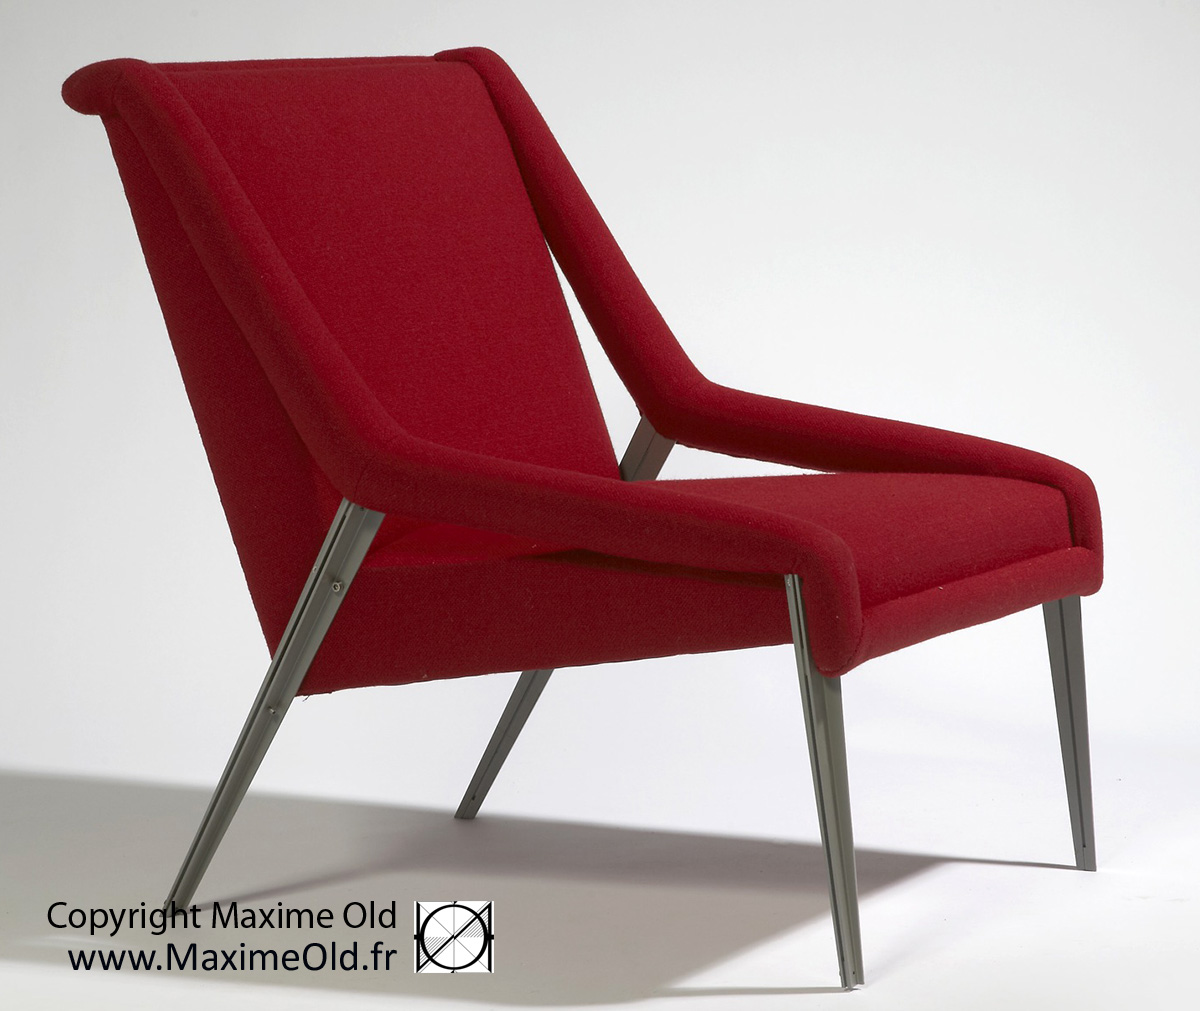 Maxime Old Seats: Maxime Old Paquebot France Light Armchair